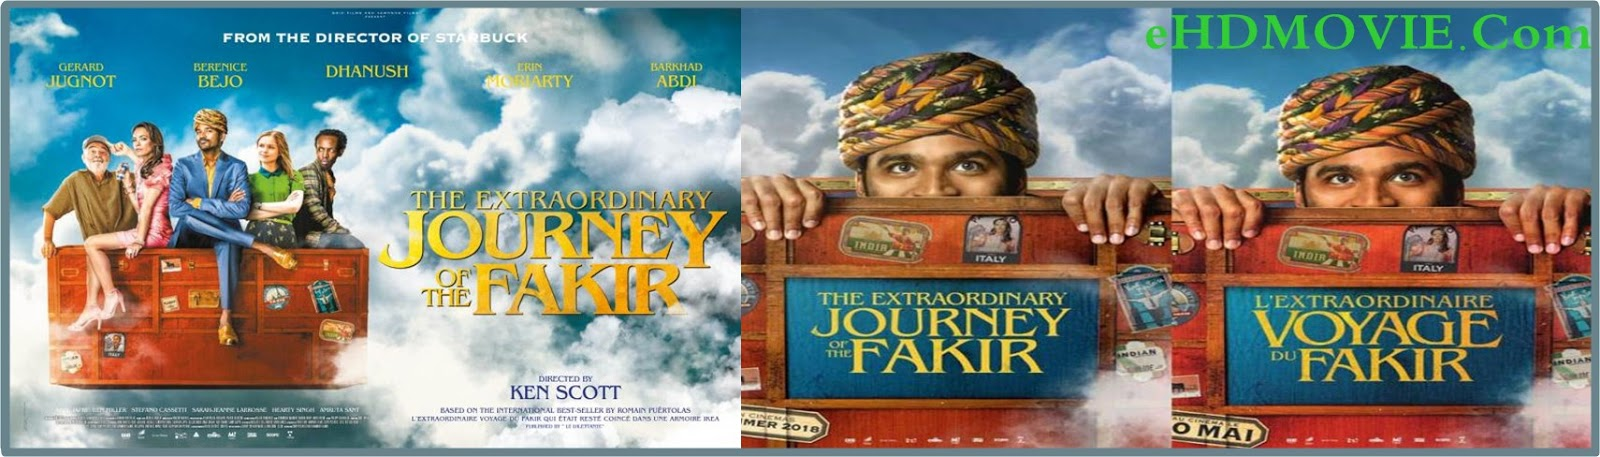 The Extraordinary Journey of the Fakir 2018 Full Movie English 720p - 480p ORG BRRip 350MB - 750MB ESubs Free Download